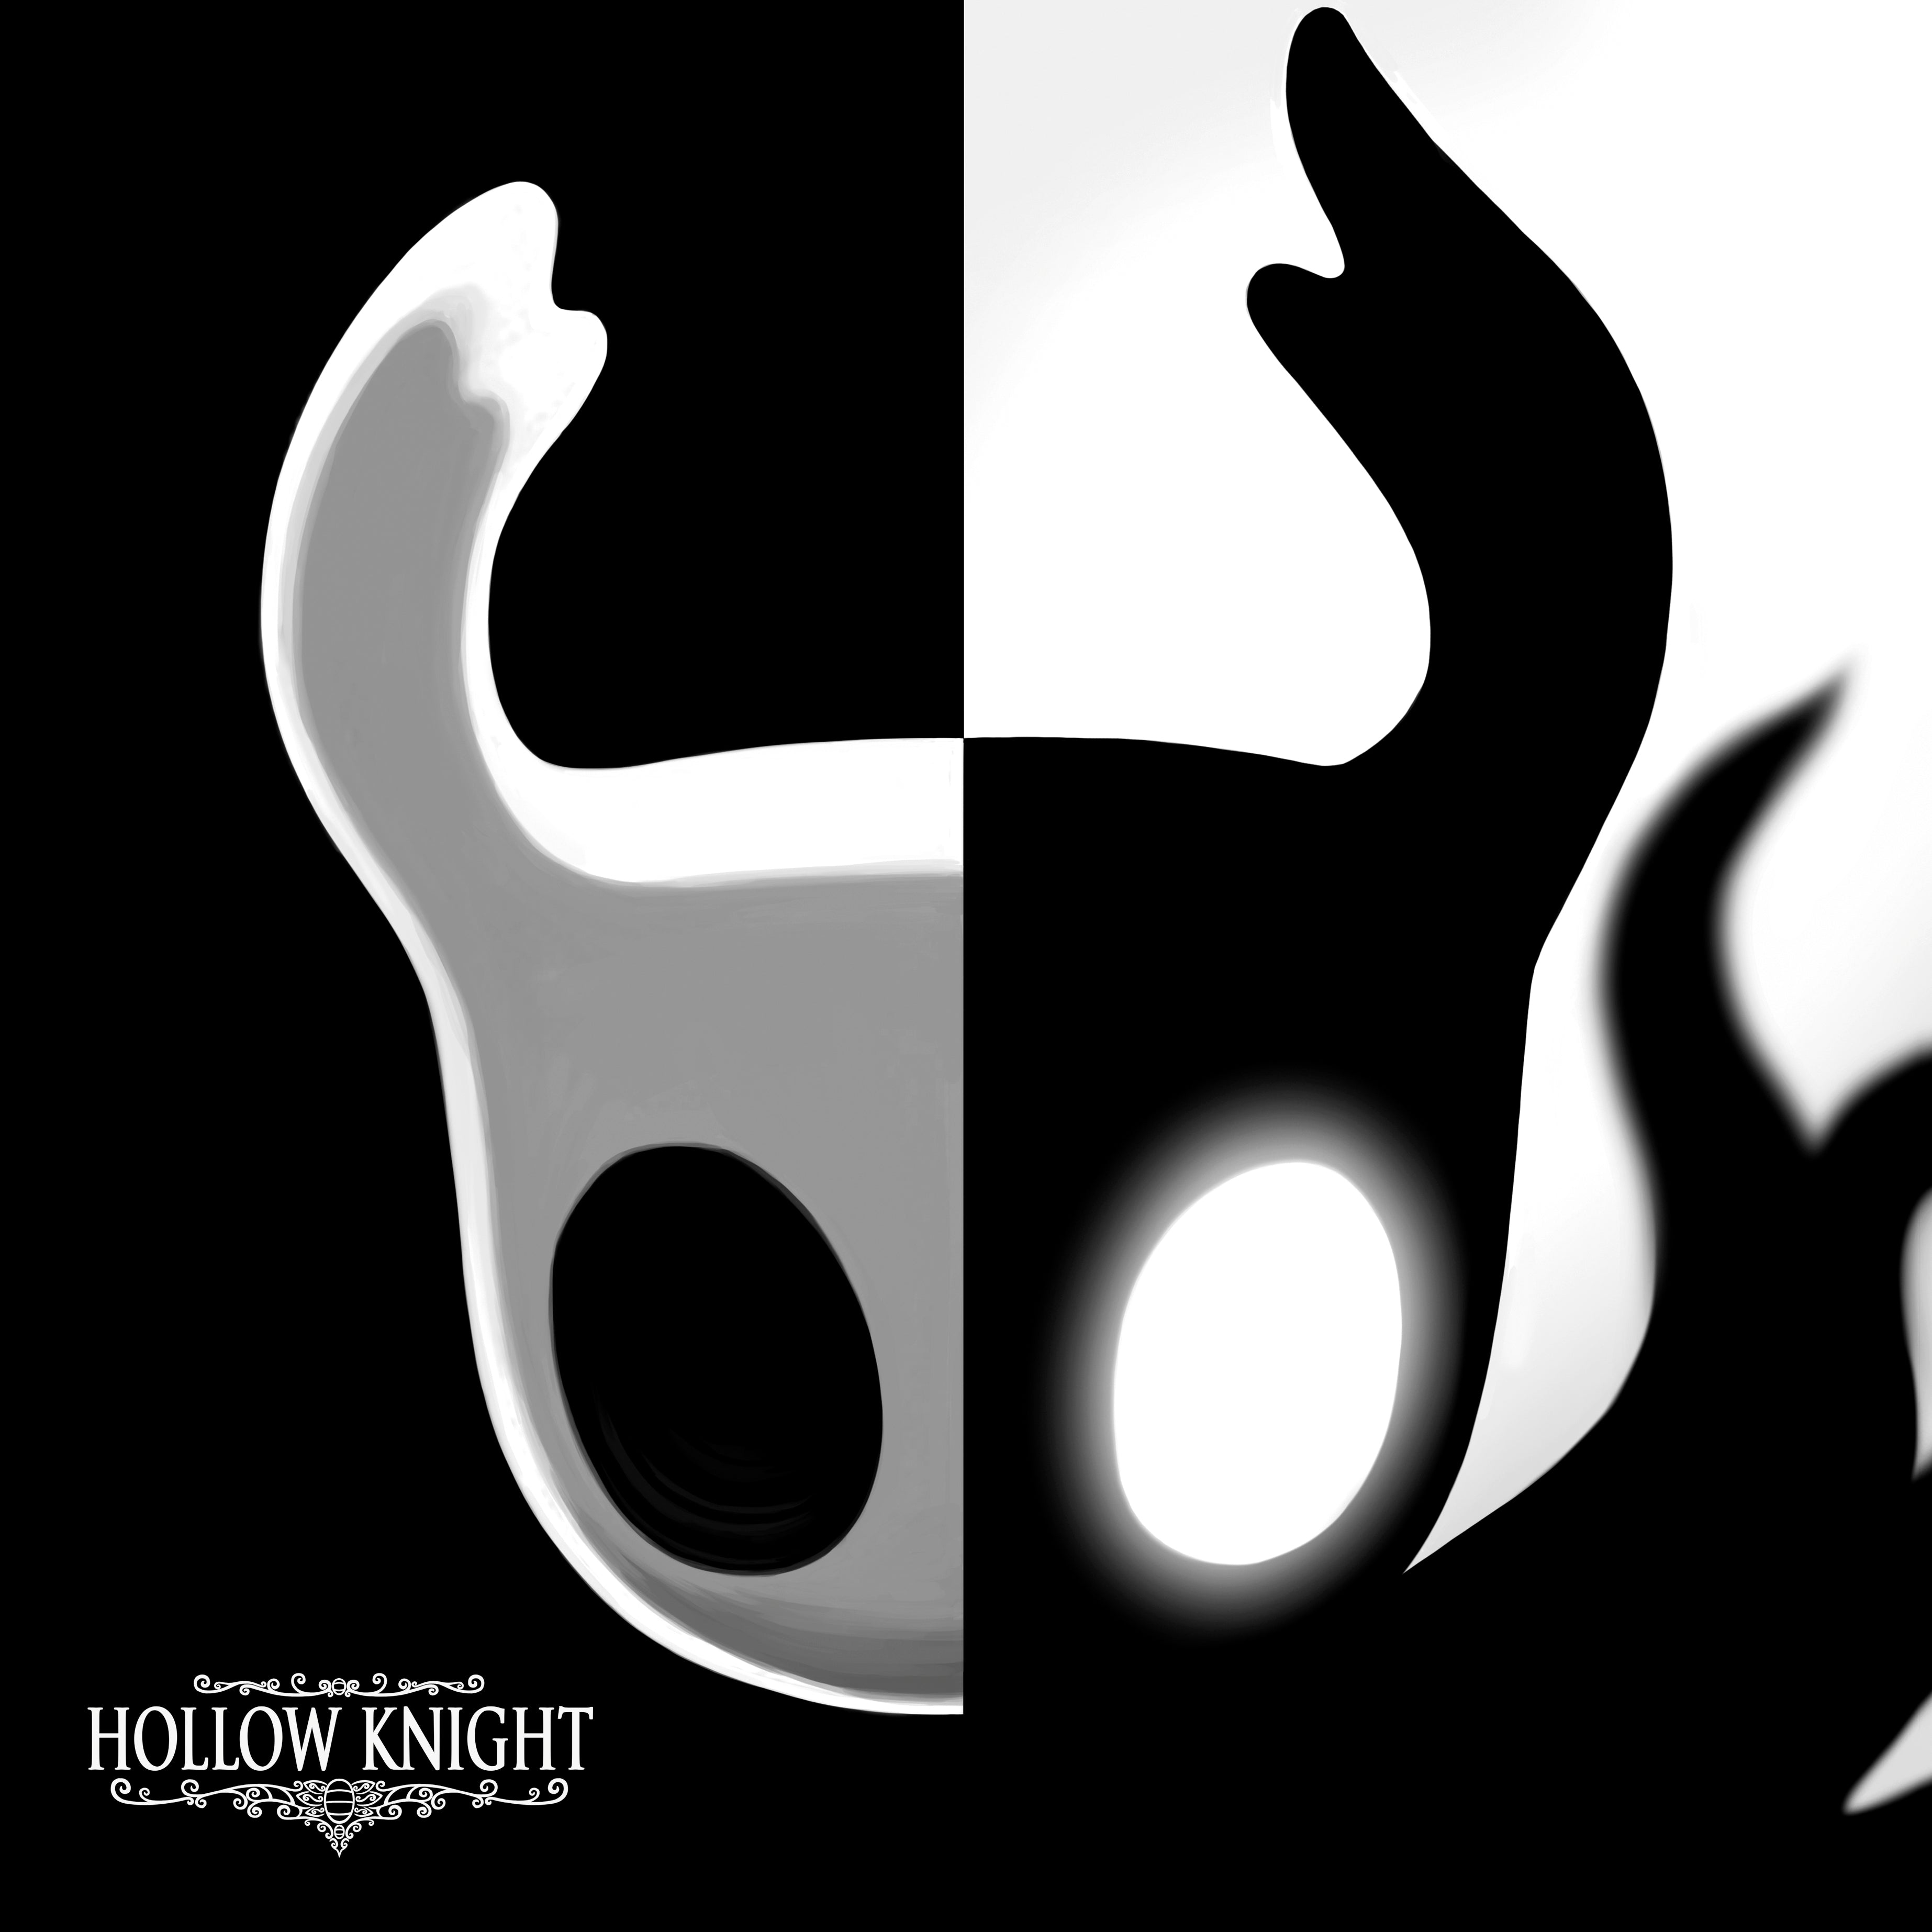 [PRE-ORDER] HOLLOW KNIGHT OST (DELUXE 2xLP)